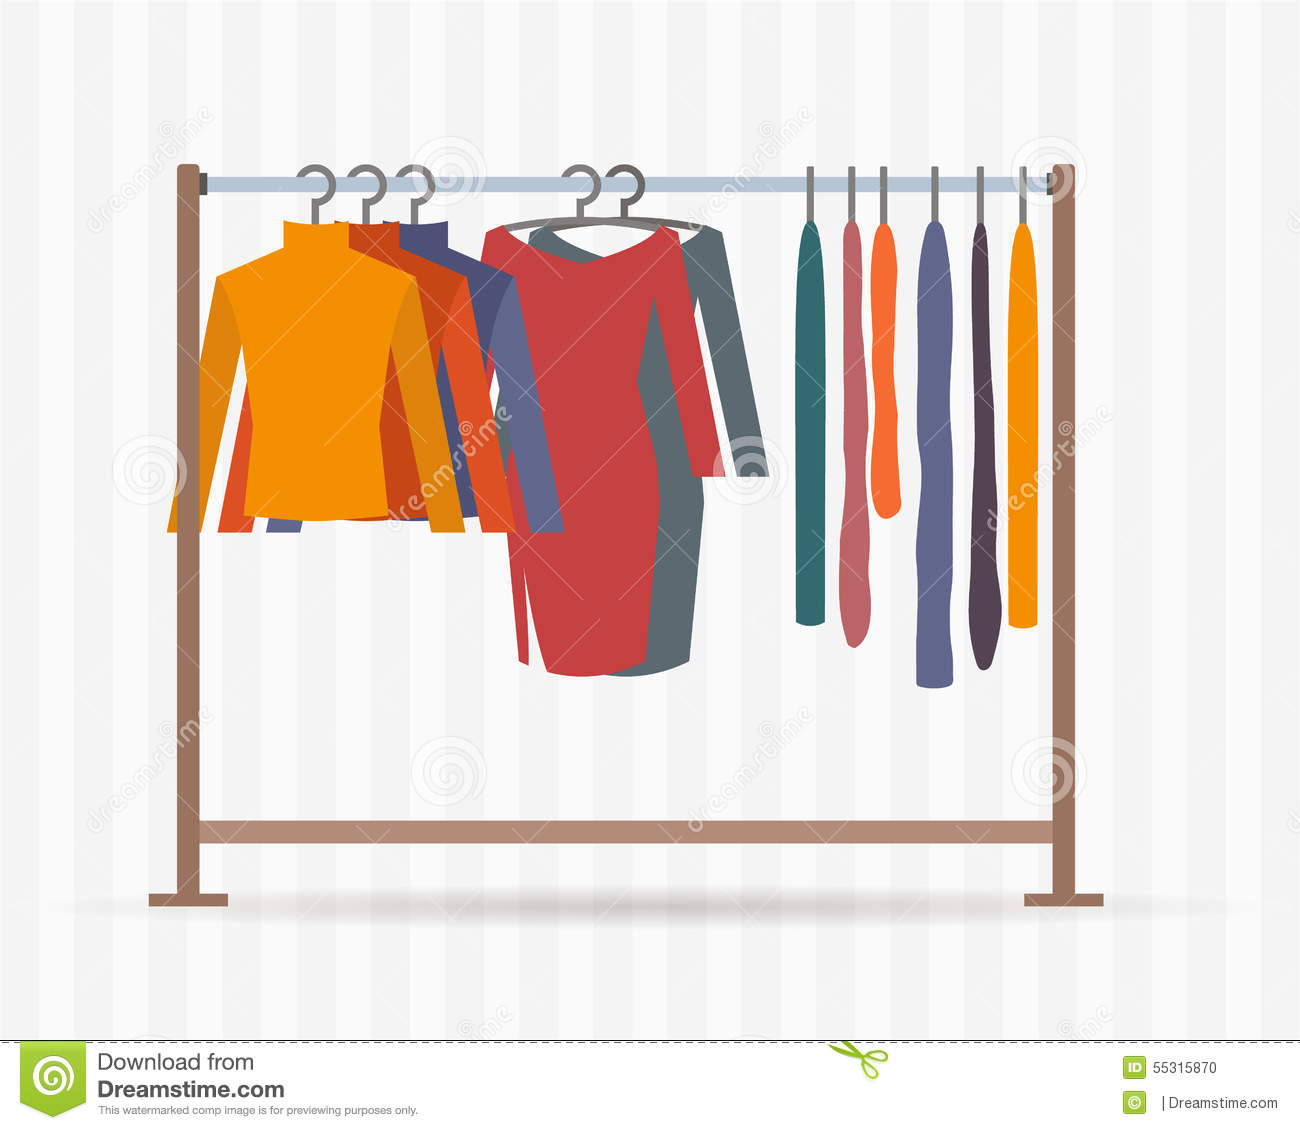 Kleiderständer clipart  Clothes Racks With Dresses On Hangers. Stock Vector - Illustration ...